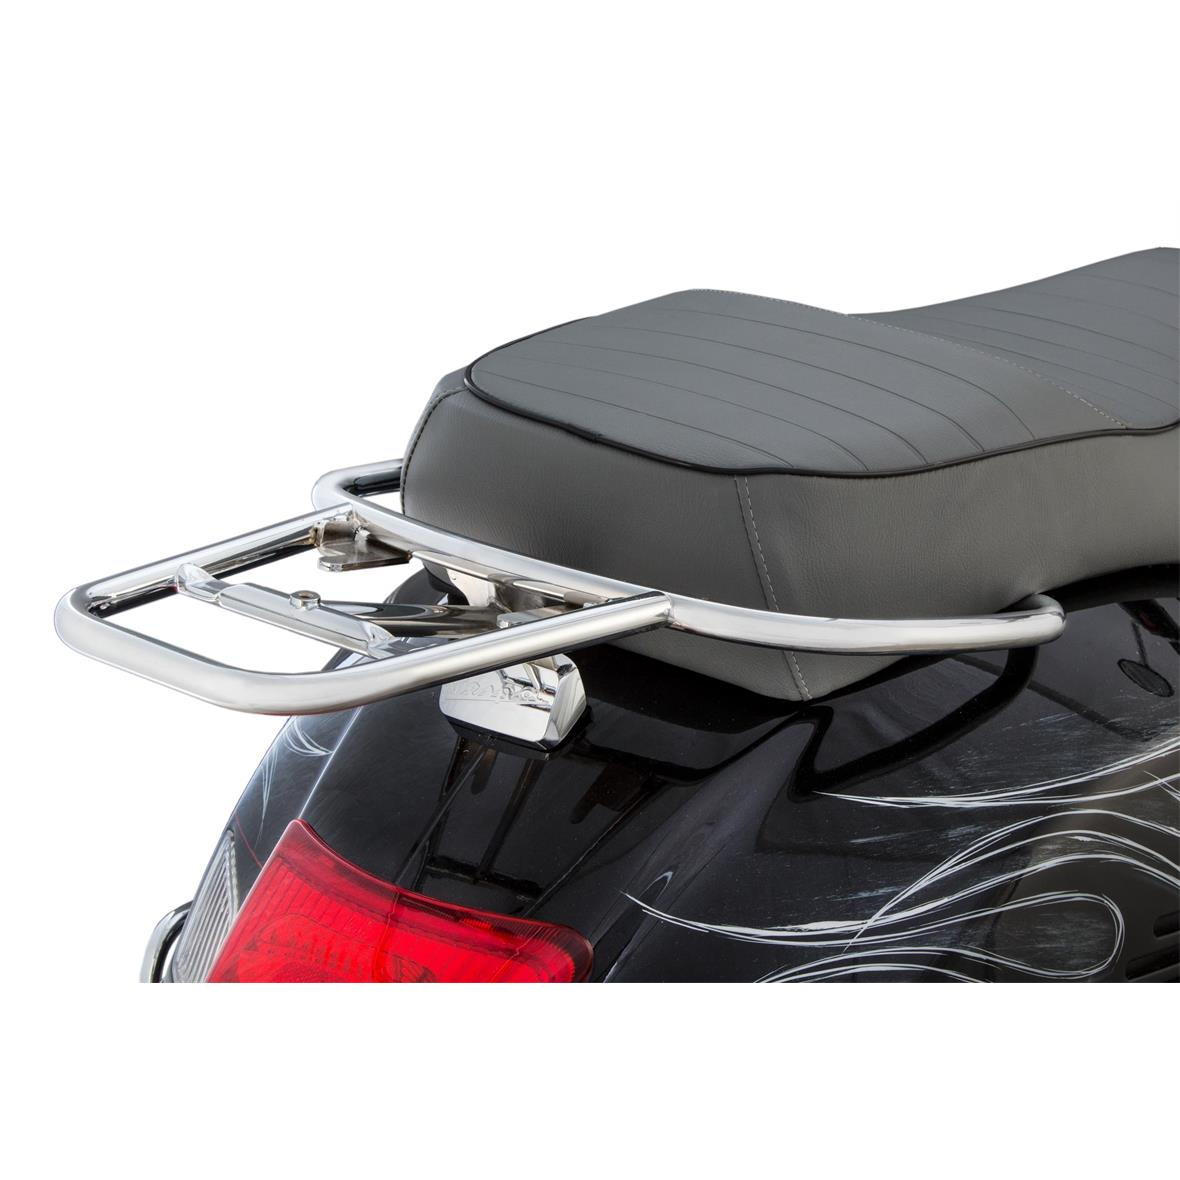 Product Image for 'Luggage Rack rear FATitle'